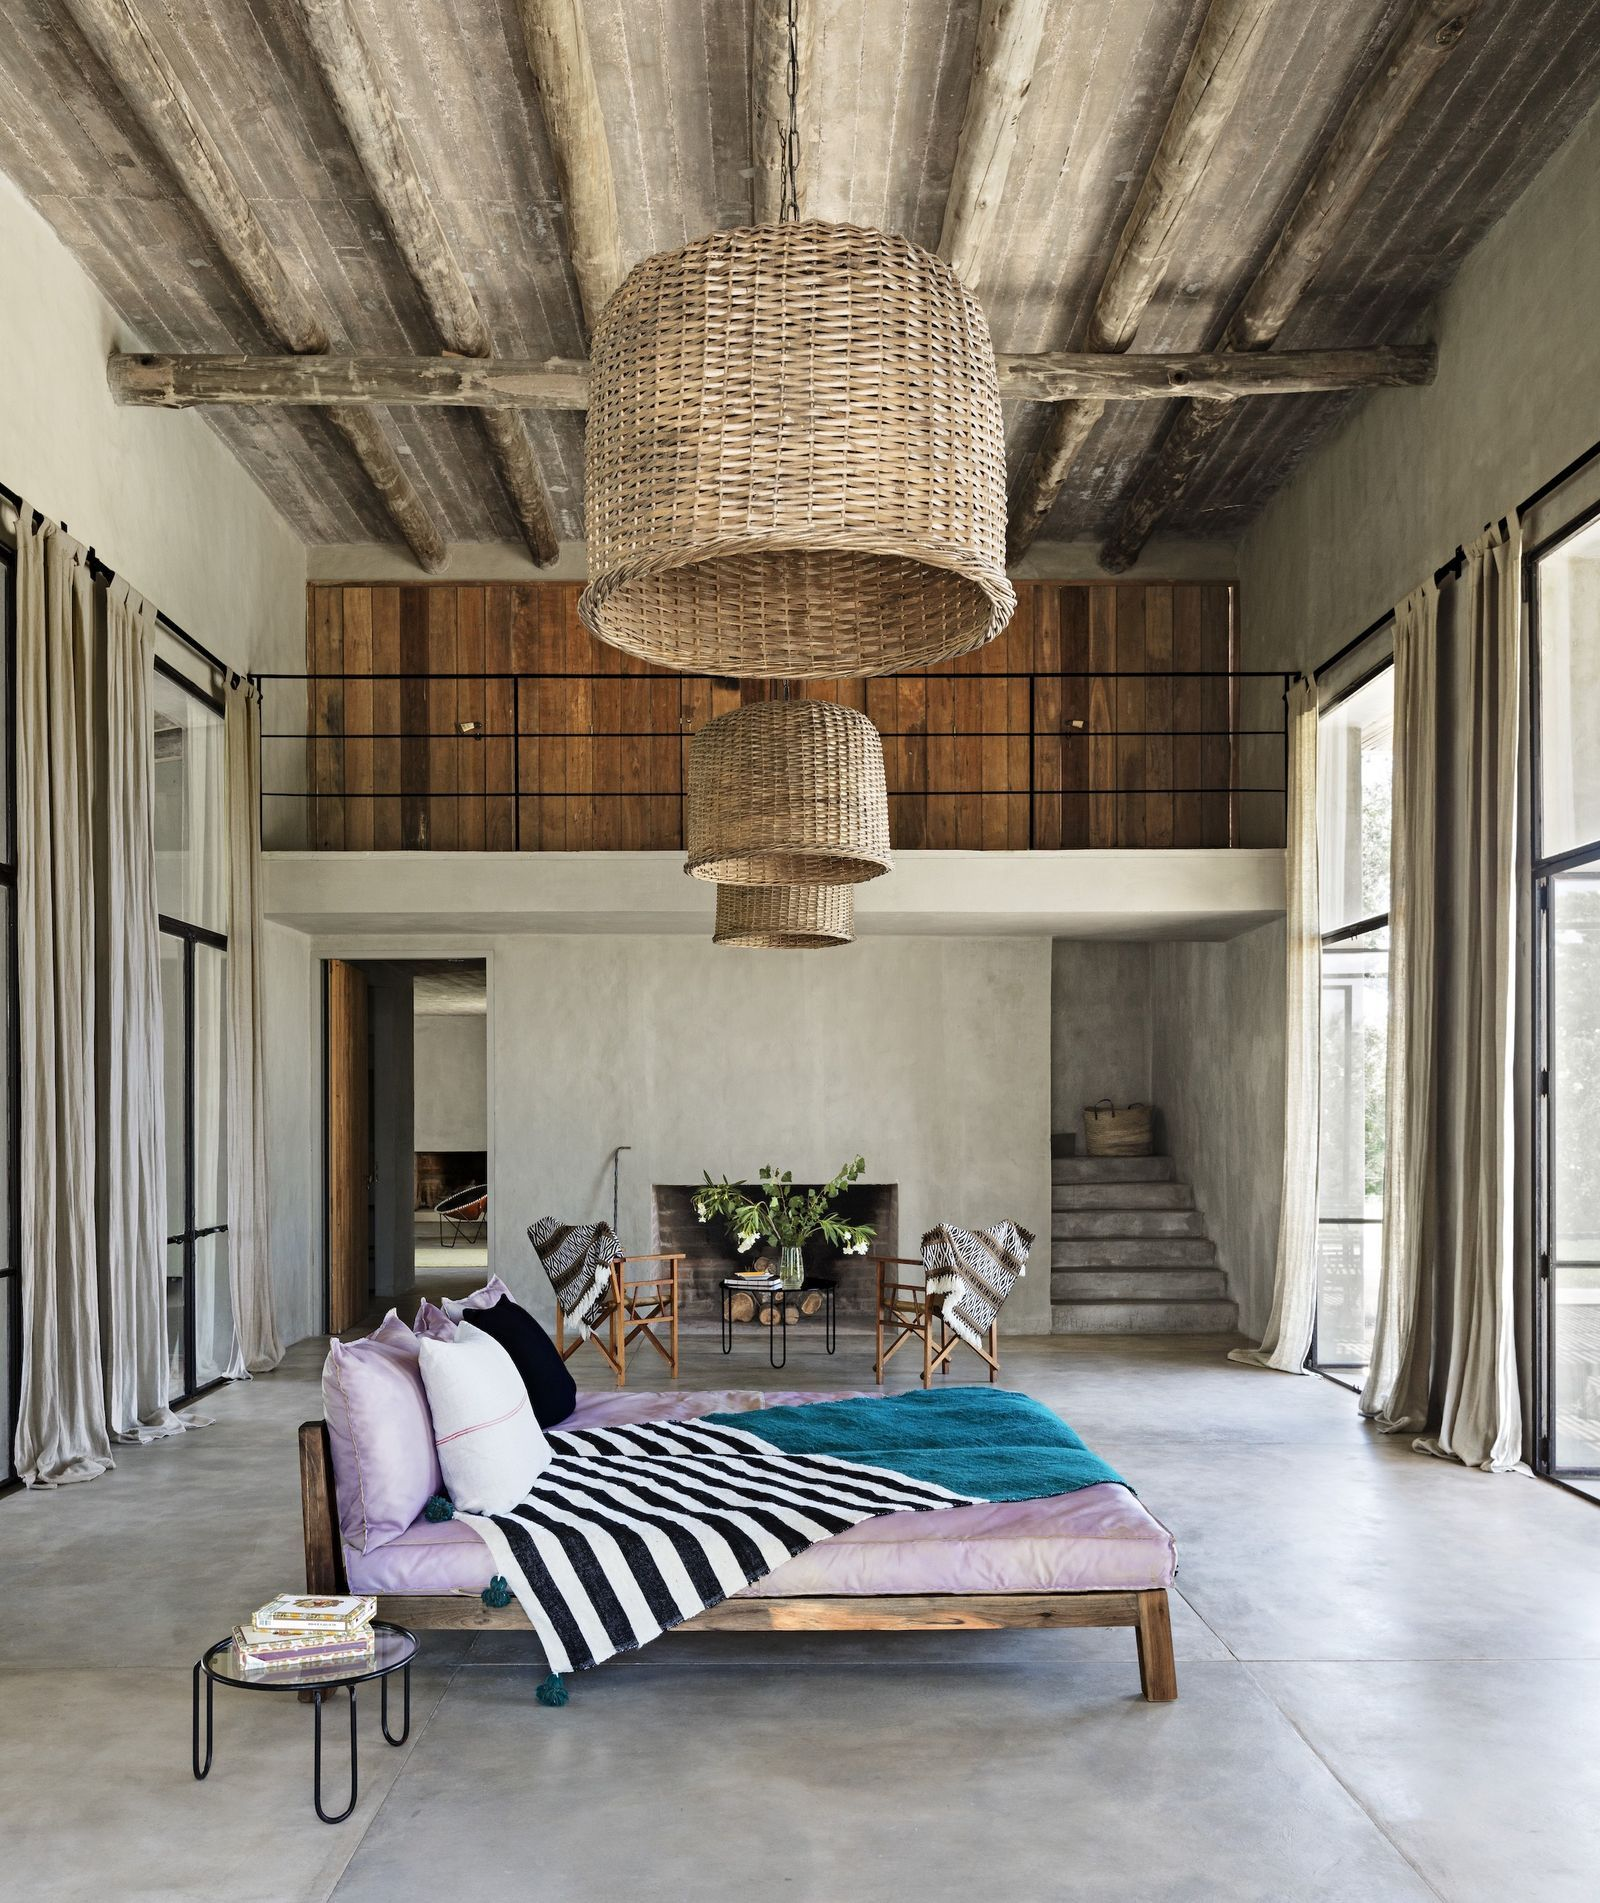 A Look Inside A Stunning Rustic And Modern Home In Uruguay In 2020 Beach House Interior Design House Interior Minimalist Living Room